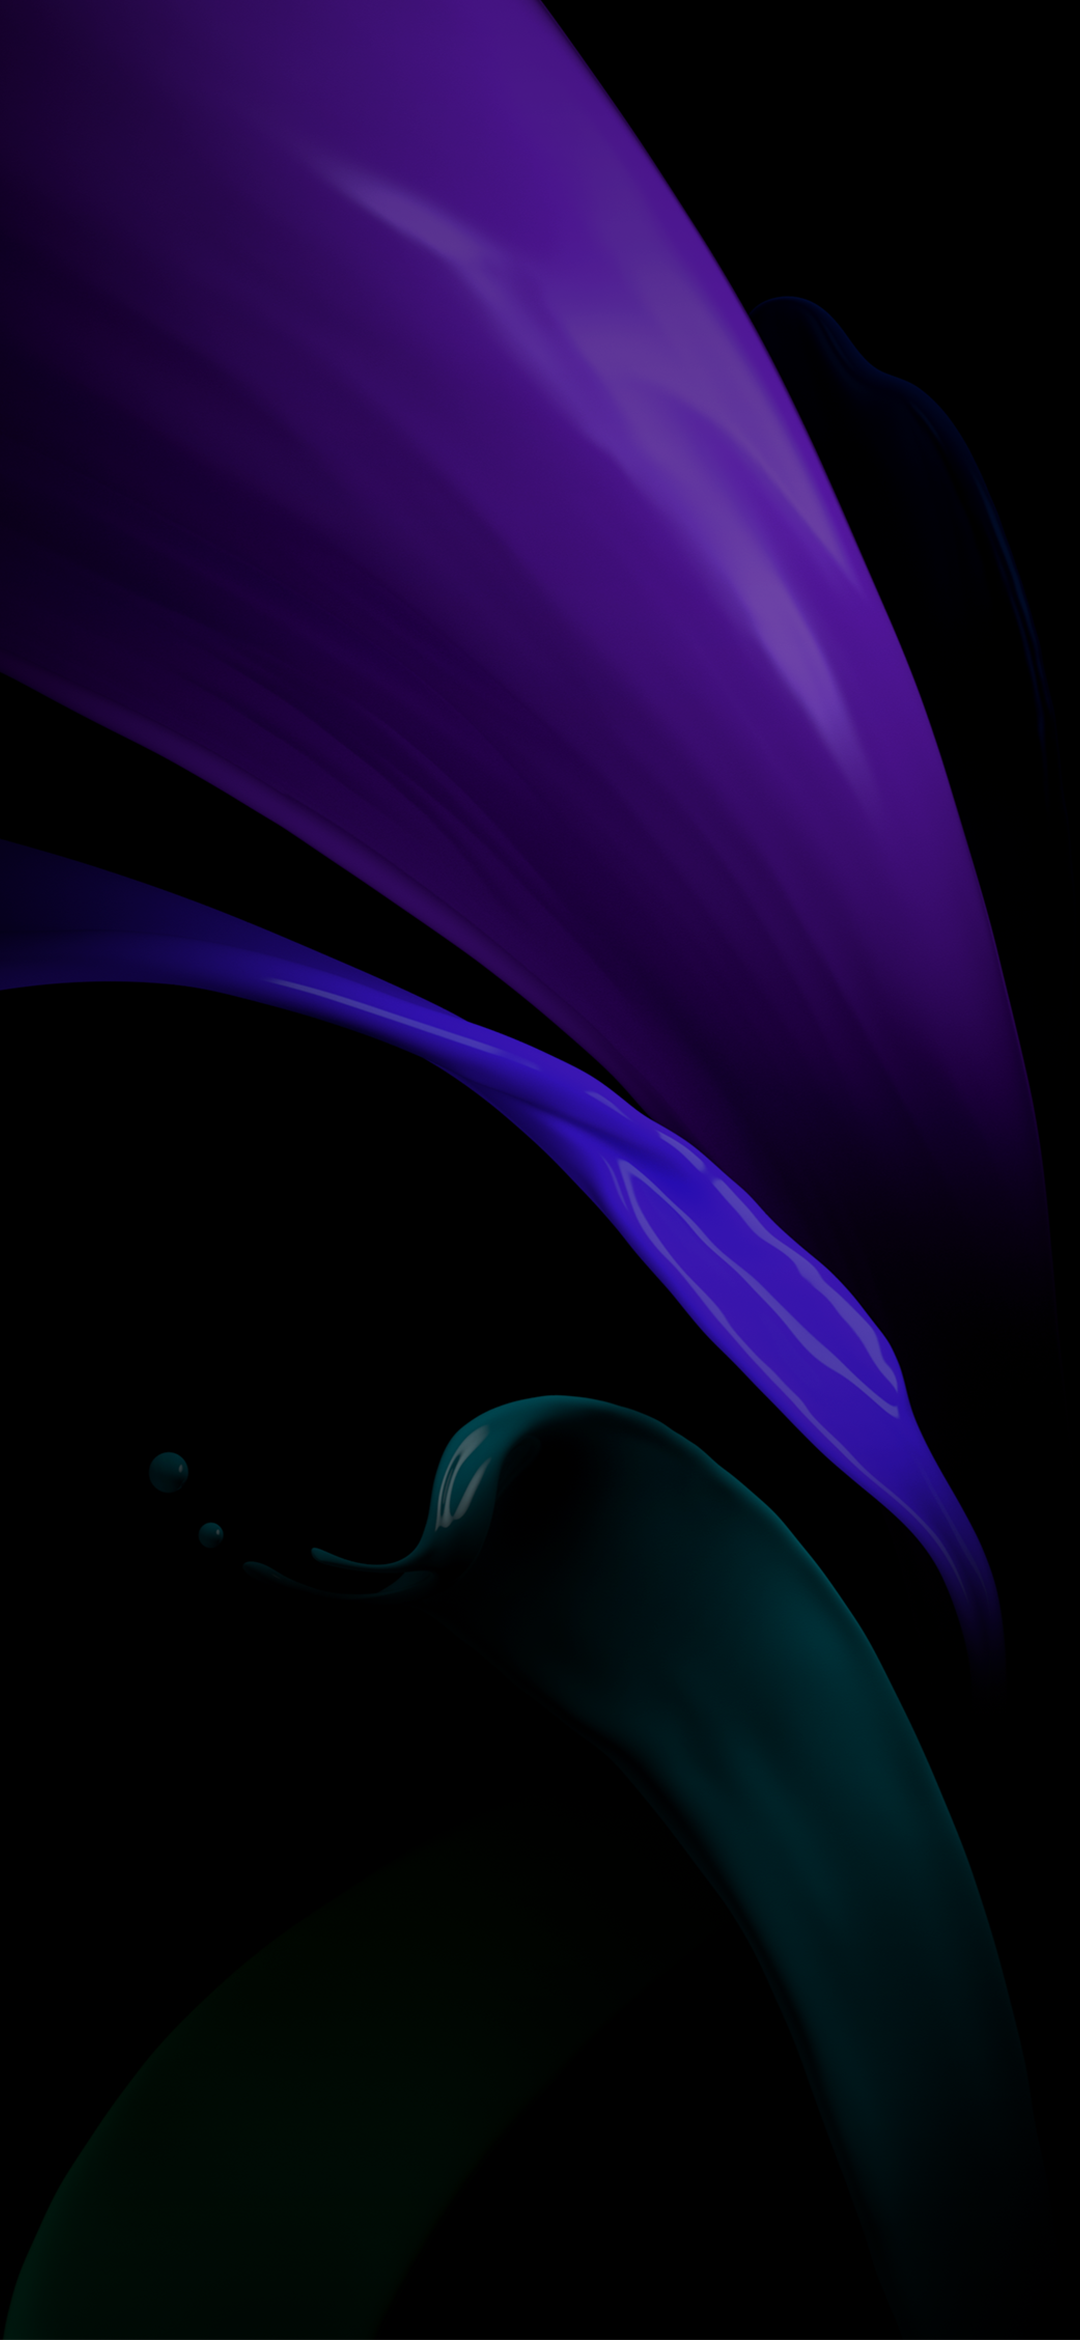 Samsung Galaxy Z Fold 2 Wallpaper Ytechb Exclusive In 2020 Galaxy Phone Wallpaper Samsung Galaxy Wallpaper Abstract Iphone Wallpaper